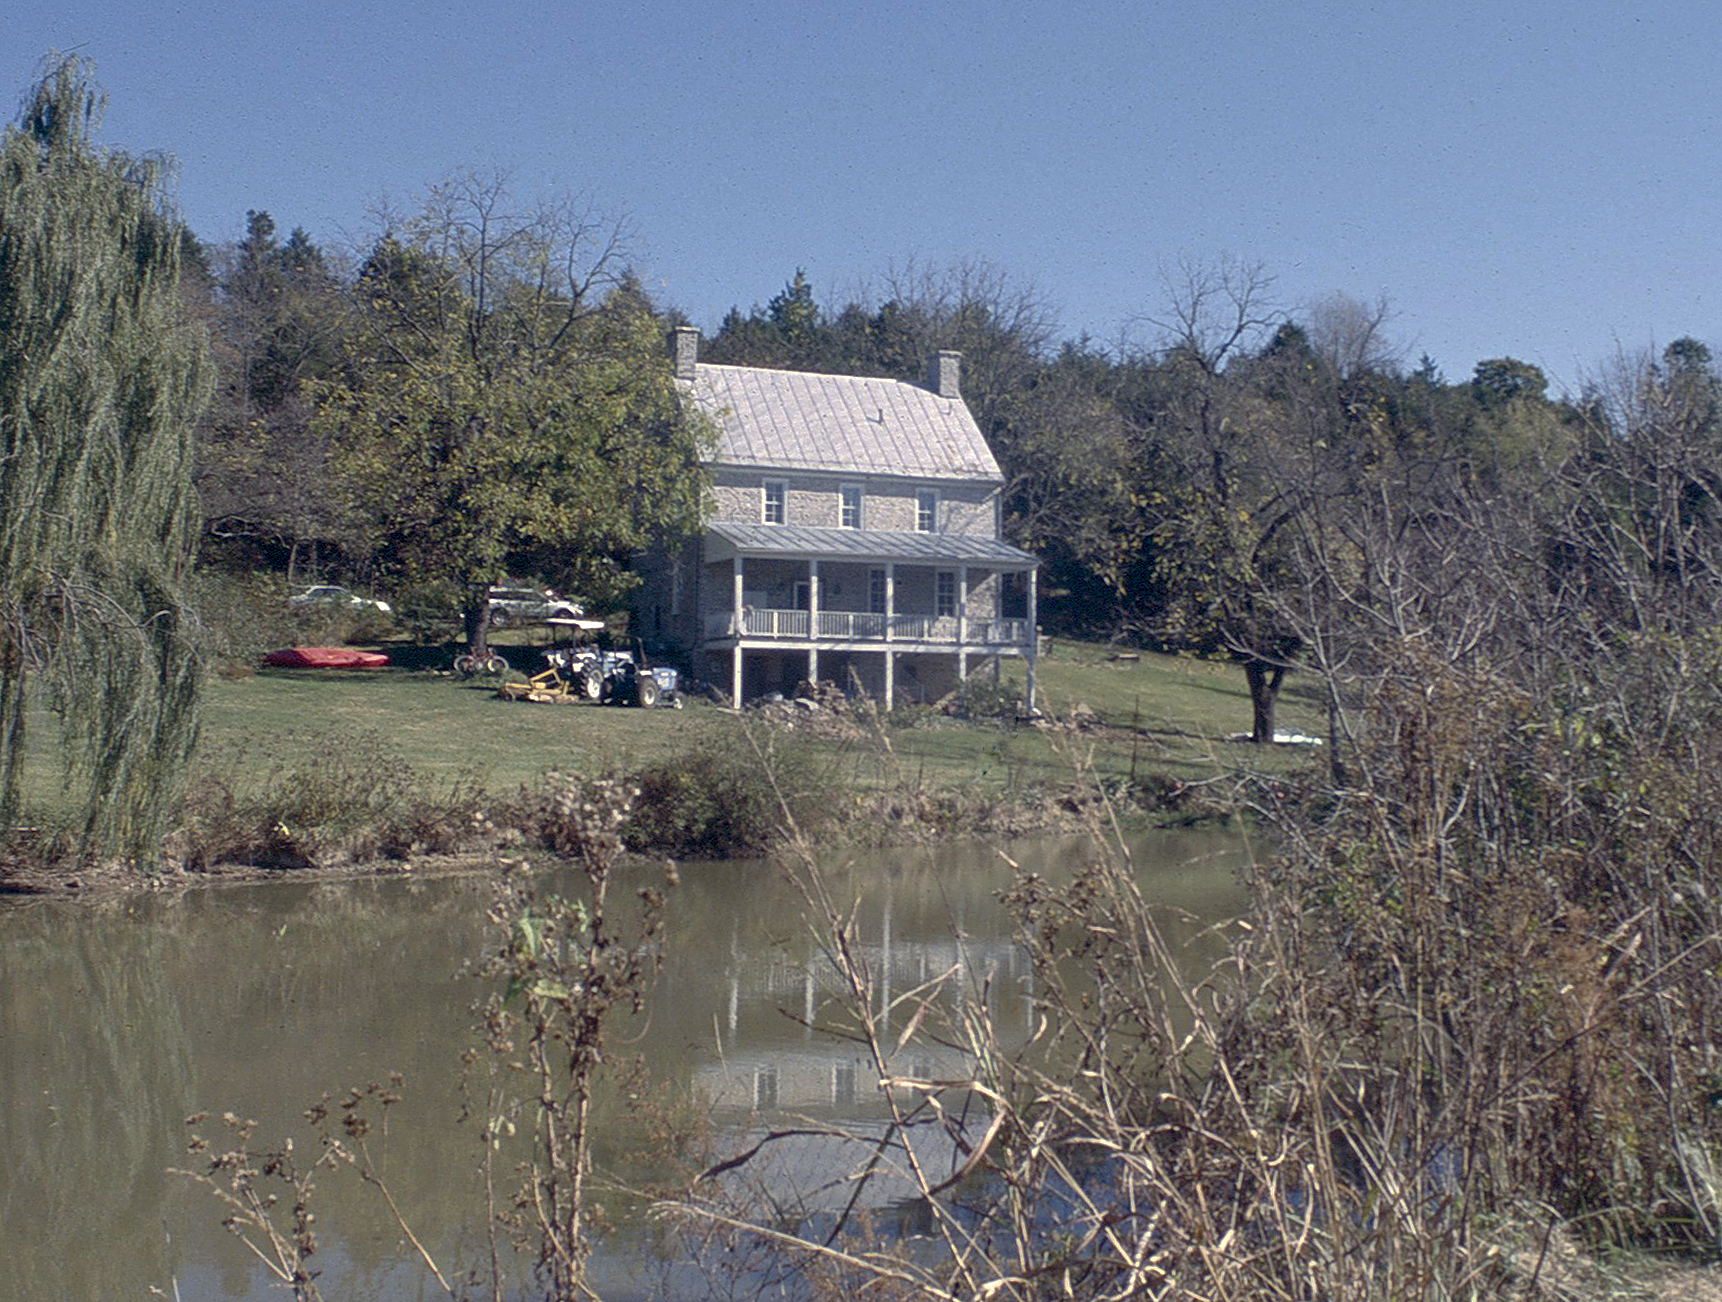 Stover House (Fort Stover)